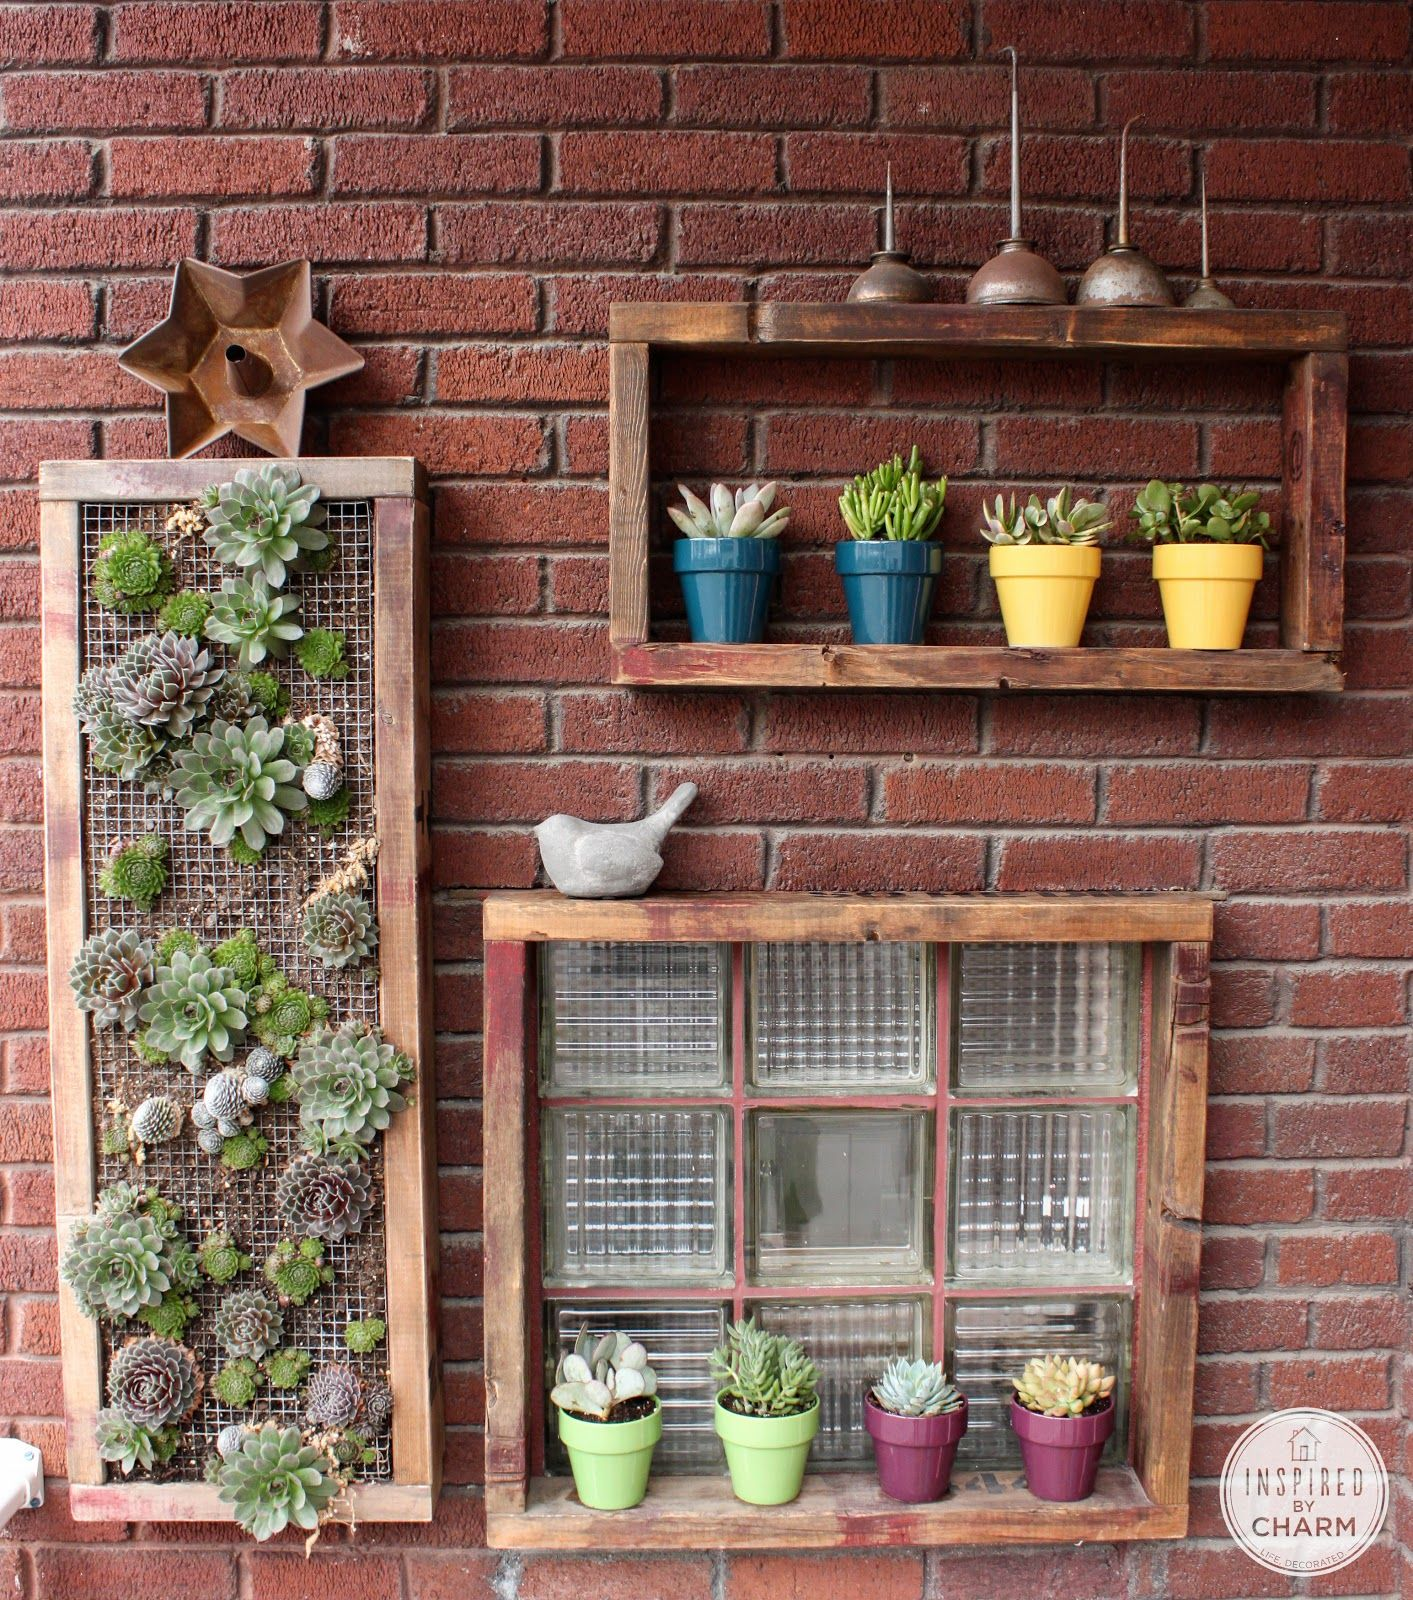 Inspired By Charm Organic Outdoor Wall Art Shelves Succulent